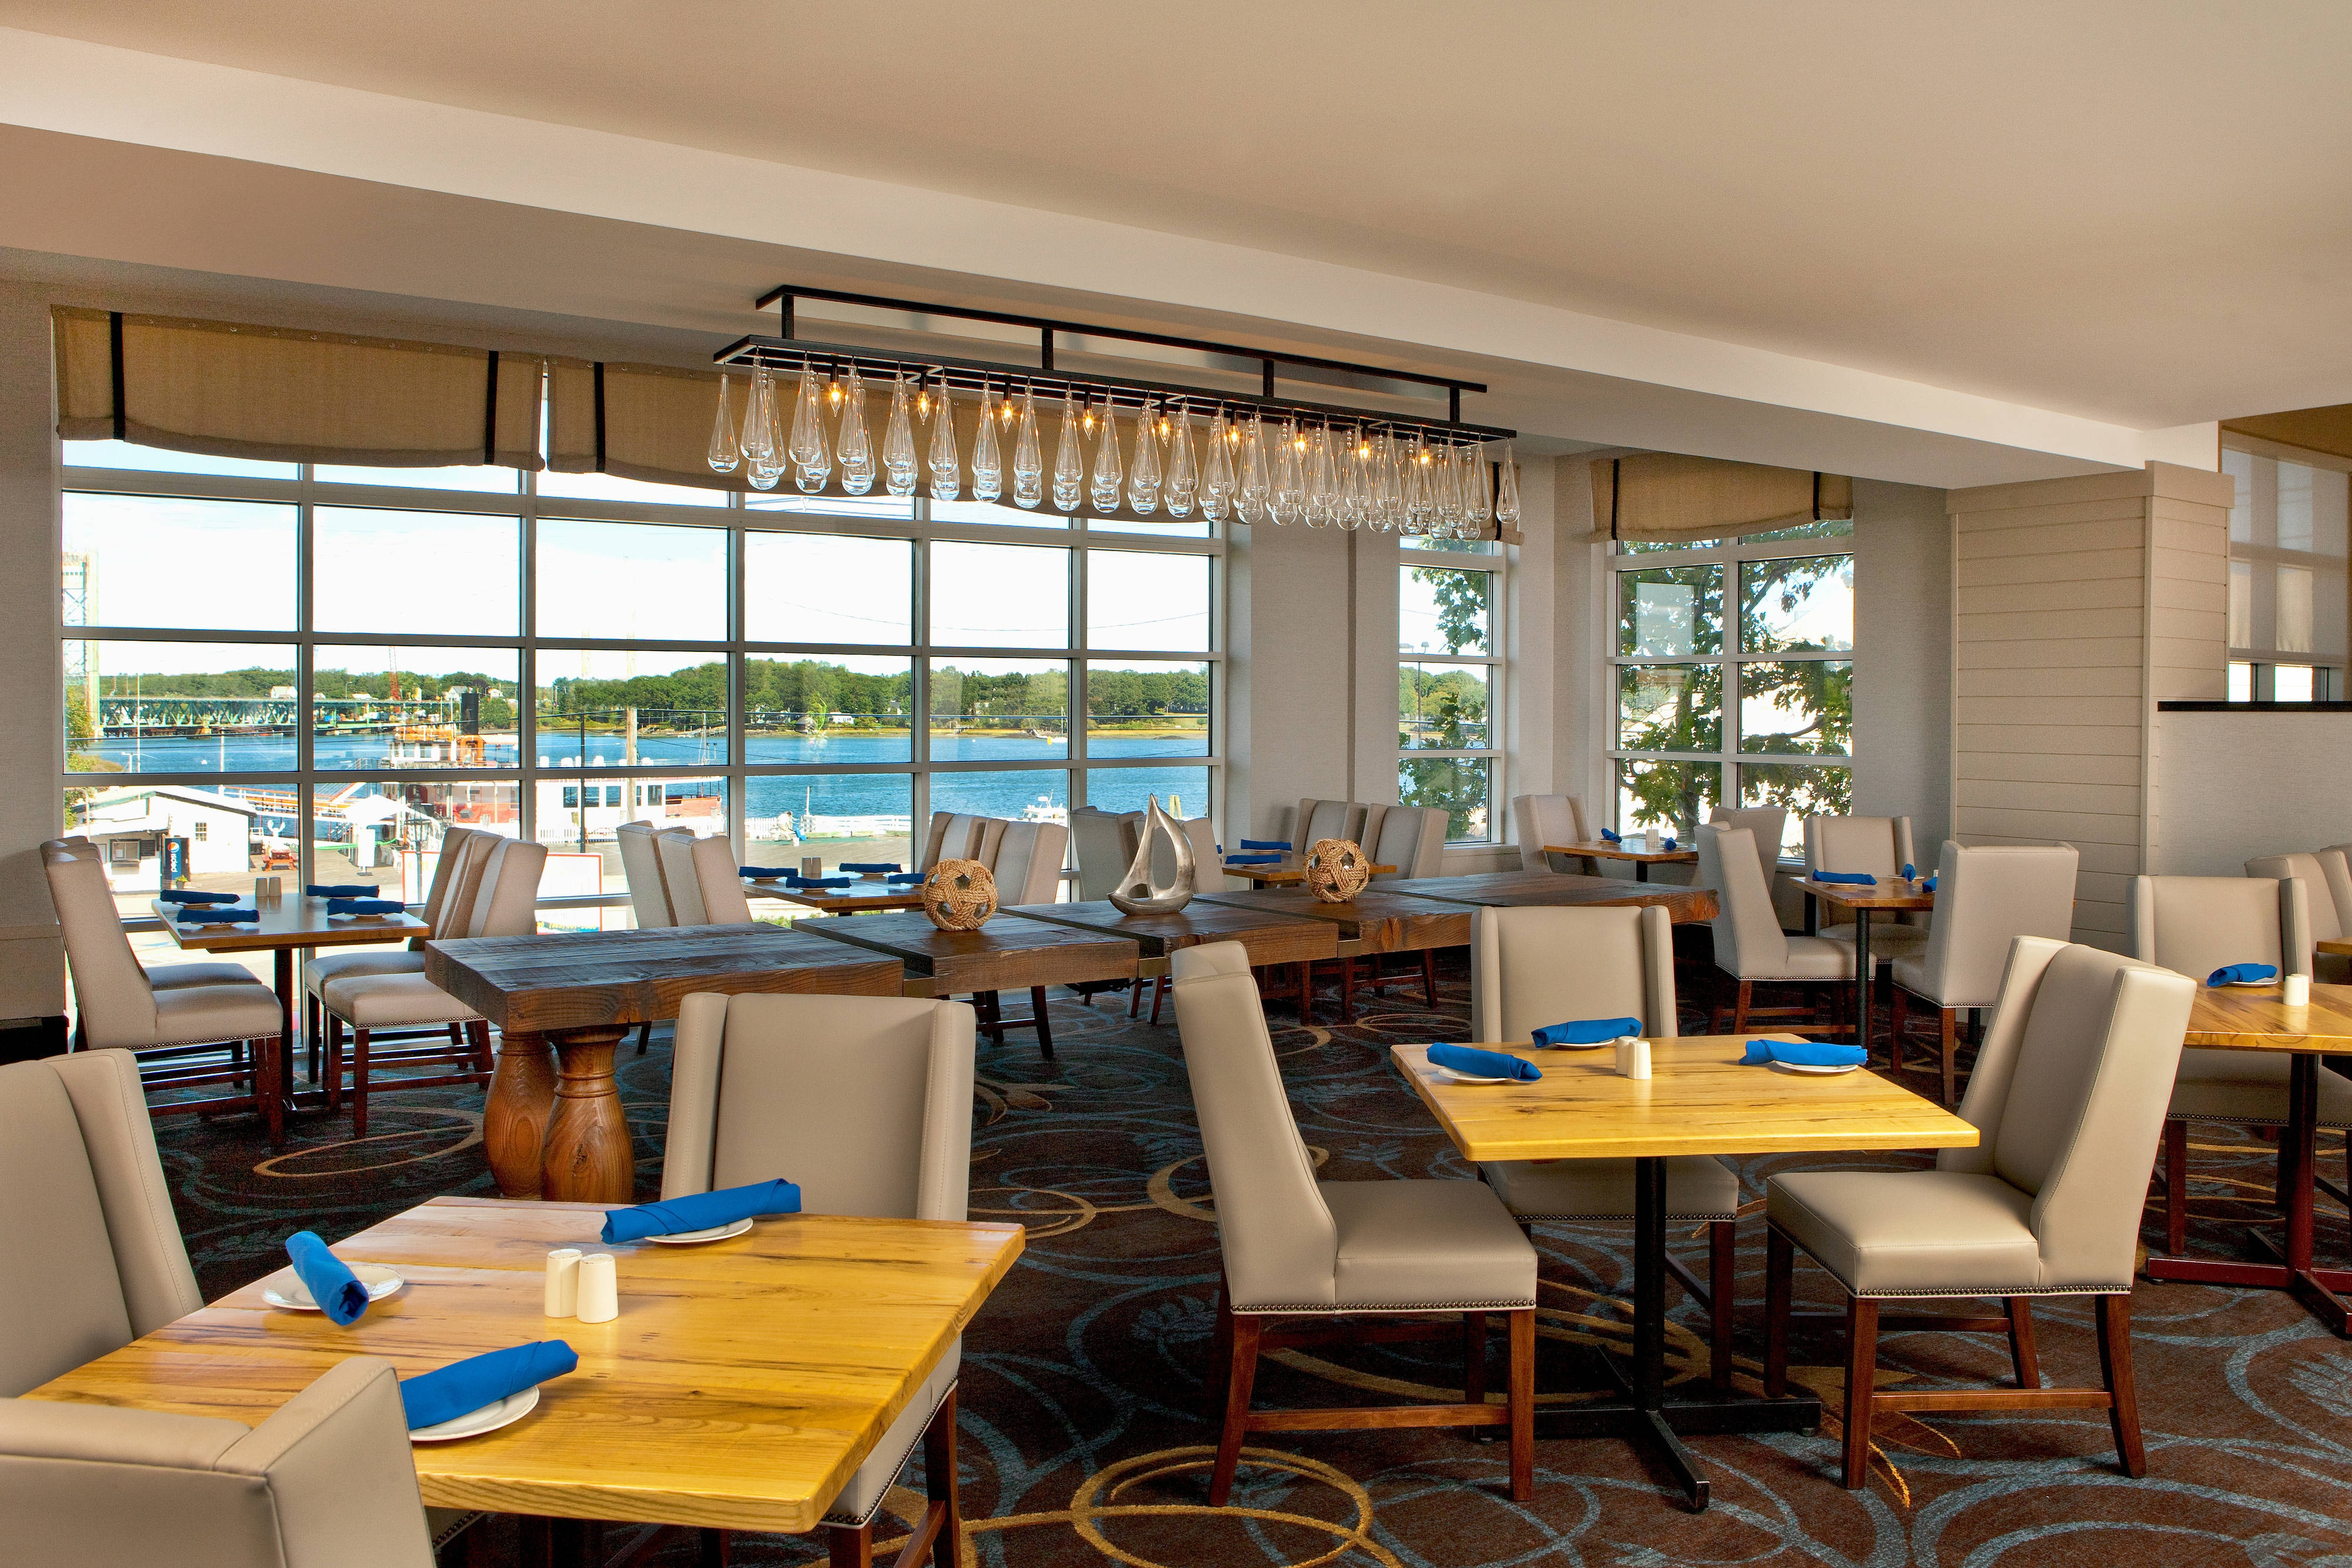 Two-Fifty Market is open for breakfast, lunch and dinner and offers stunning views of the Piscataqua River.